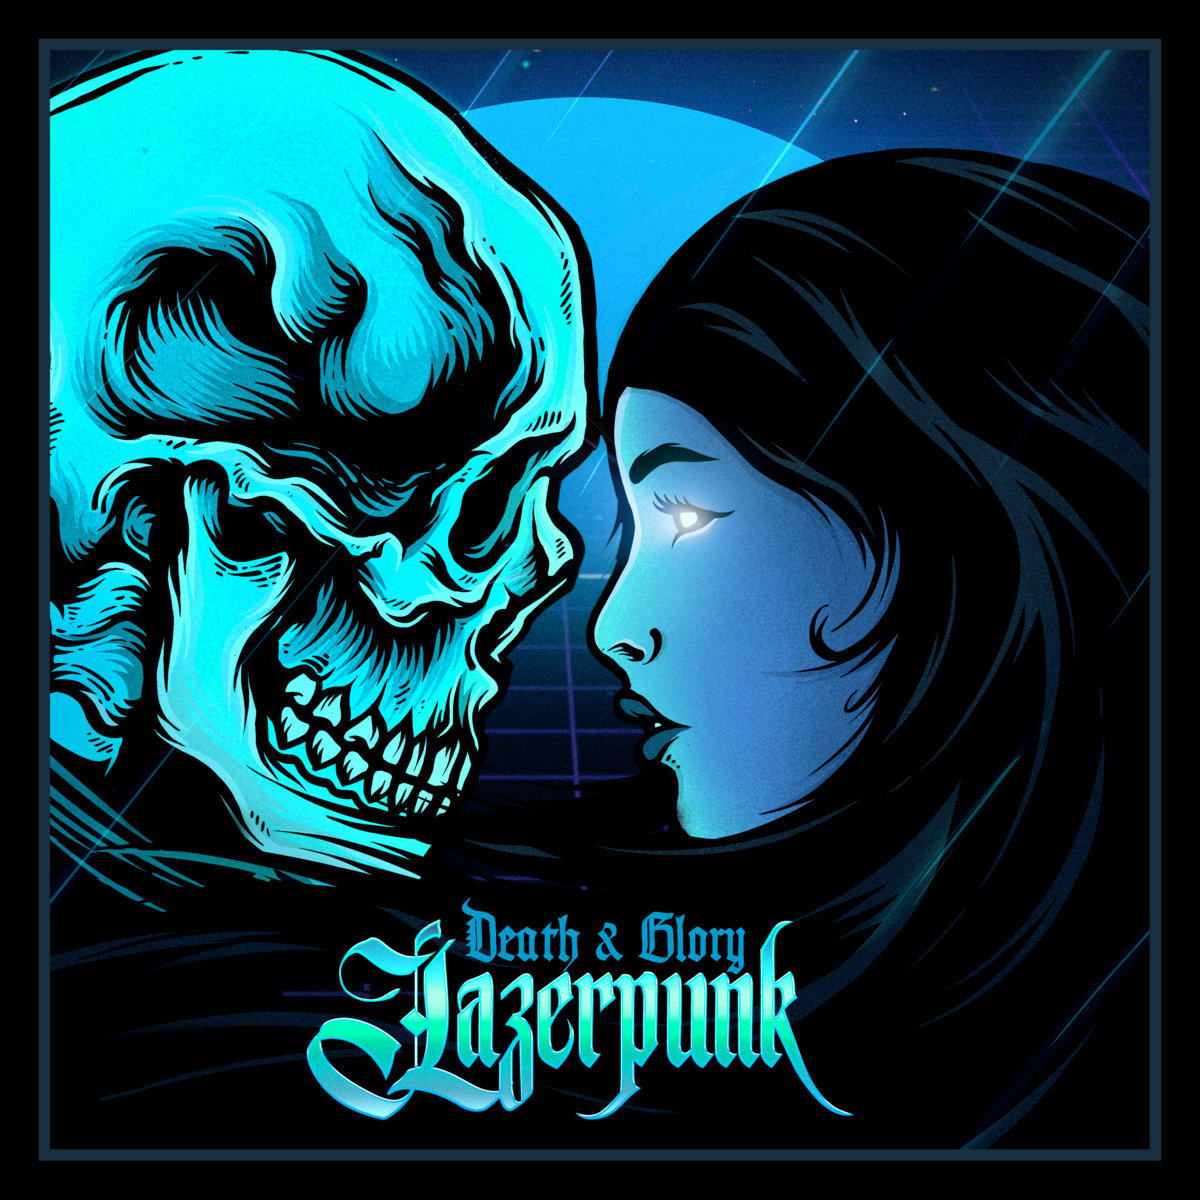 LAZERPUNKDEATH & GLORY-Lazerpunk!-Art